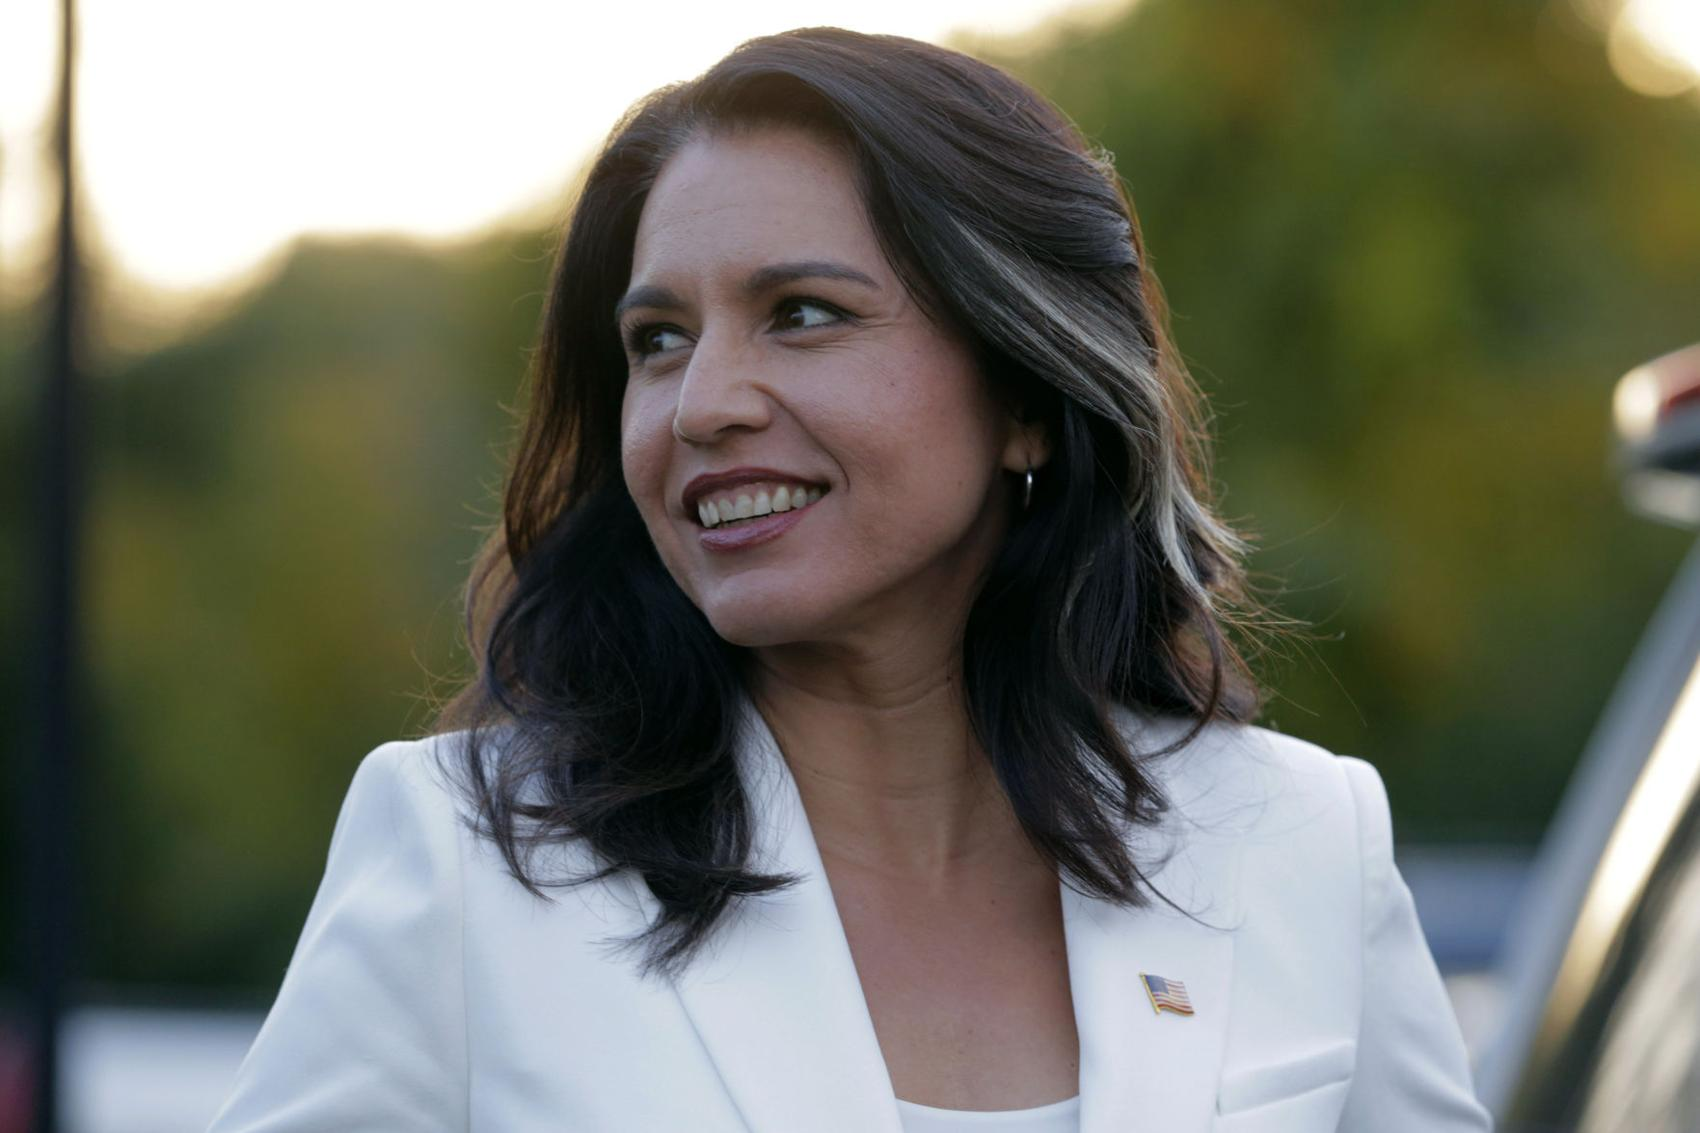 POST AND COURIER – Tulsi Gabbard in SC says dropping out of the Democratic race hasn't been discussed